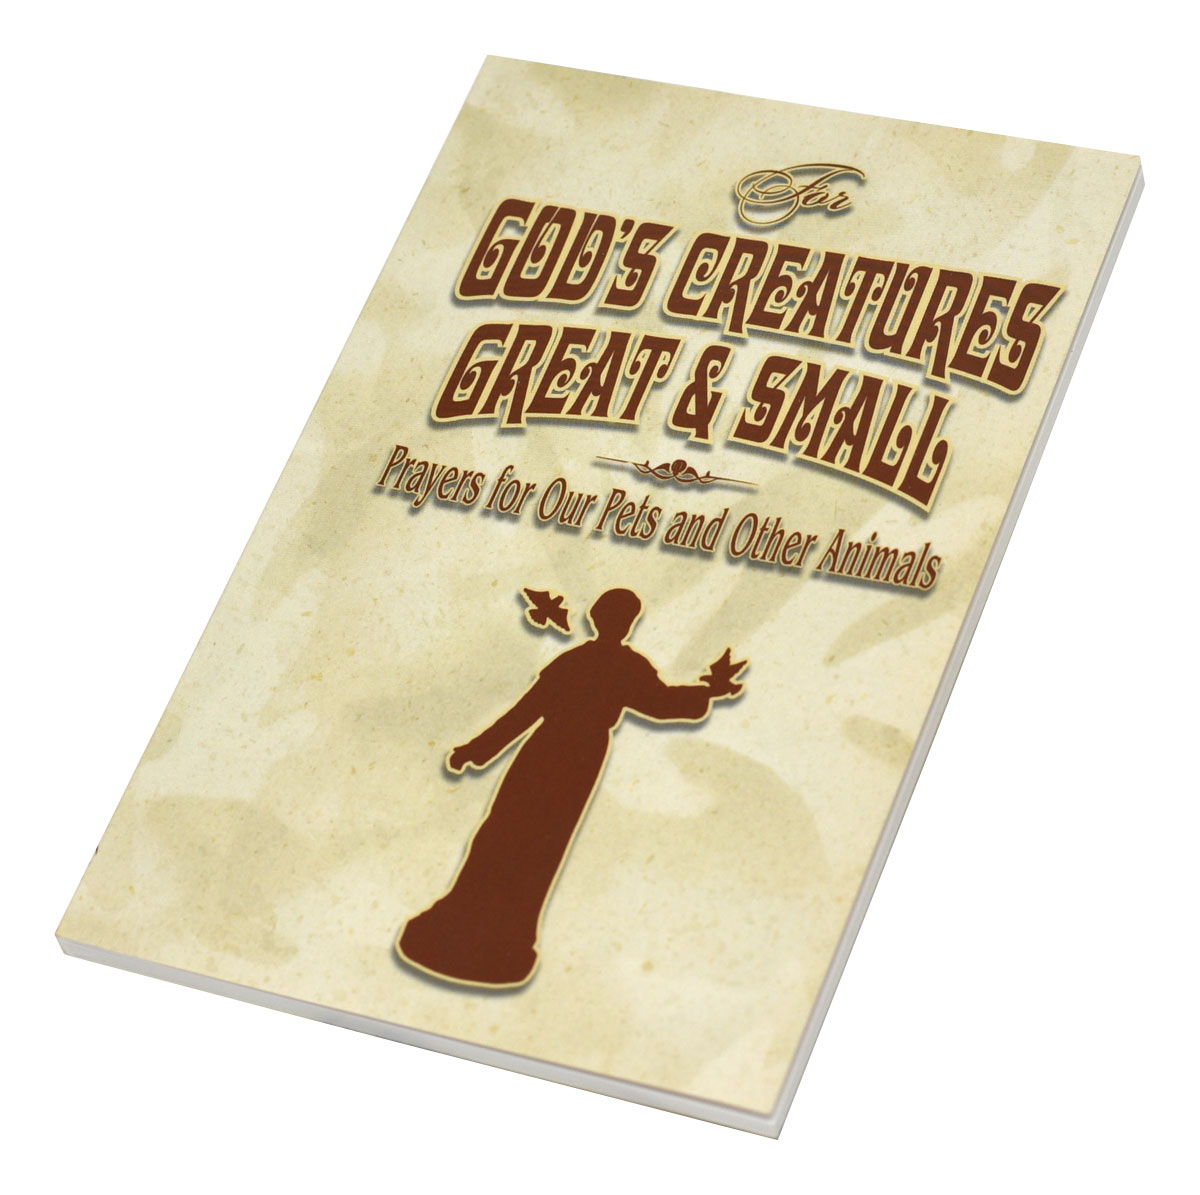 Preview the inside pages » For God's Creatures Great And Small Prayers For Our Pets And Other Animals